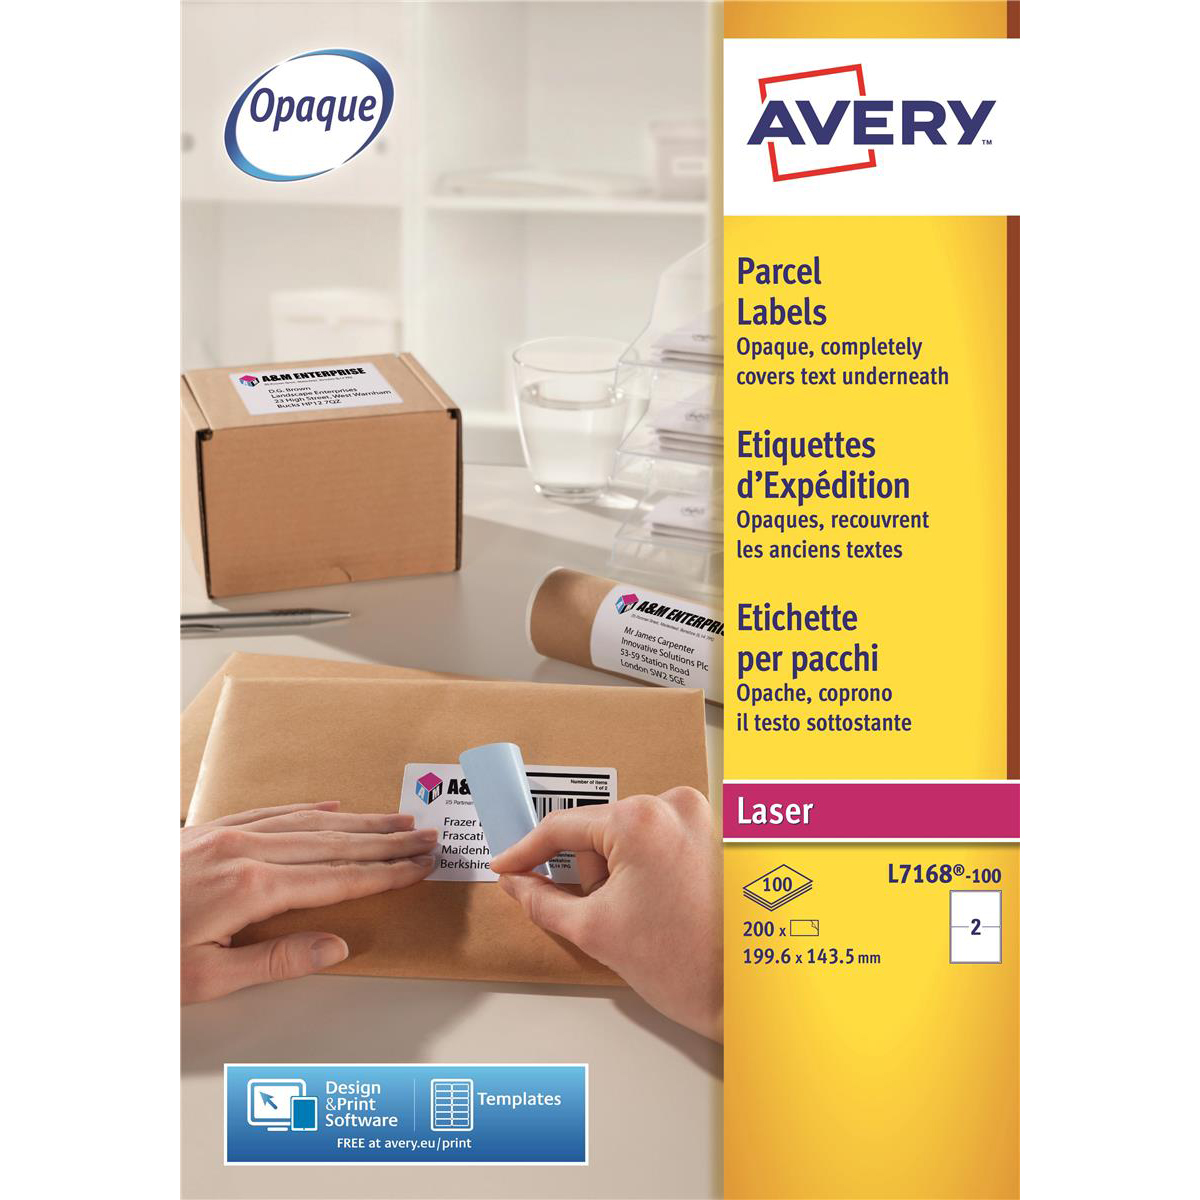 Avery Addressing Labels Laser Jam-free 2 per Sheet 199.6x143.5mm White Ref L7168-100 [200 Labels]